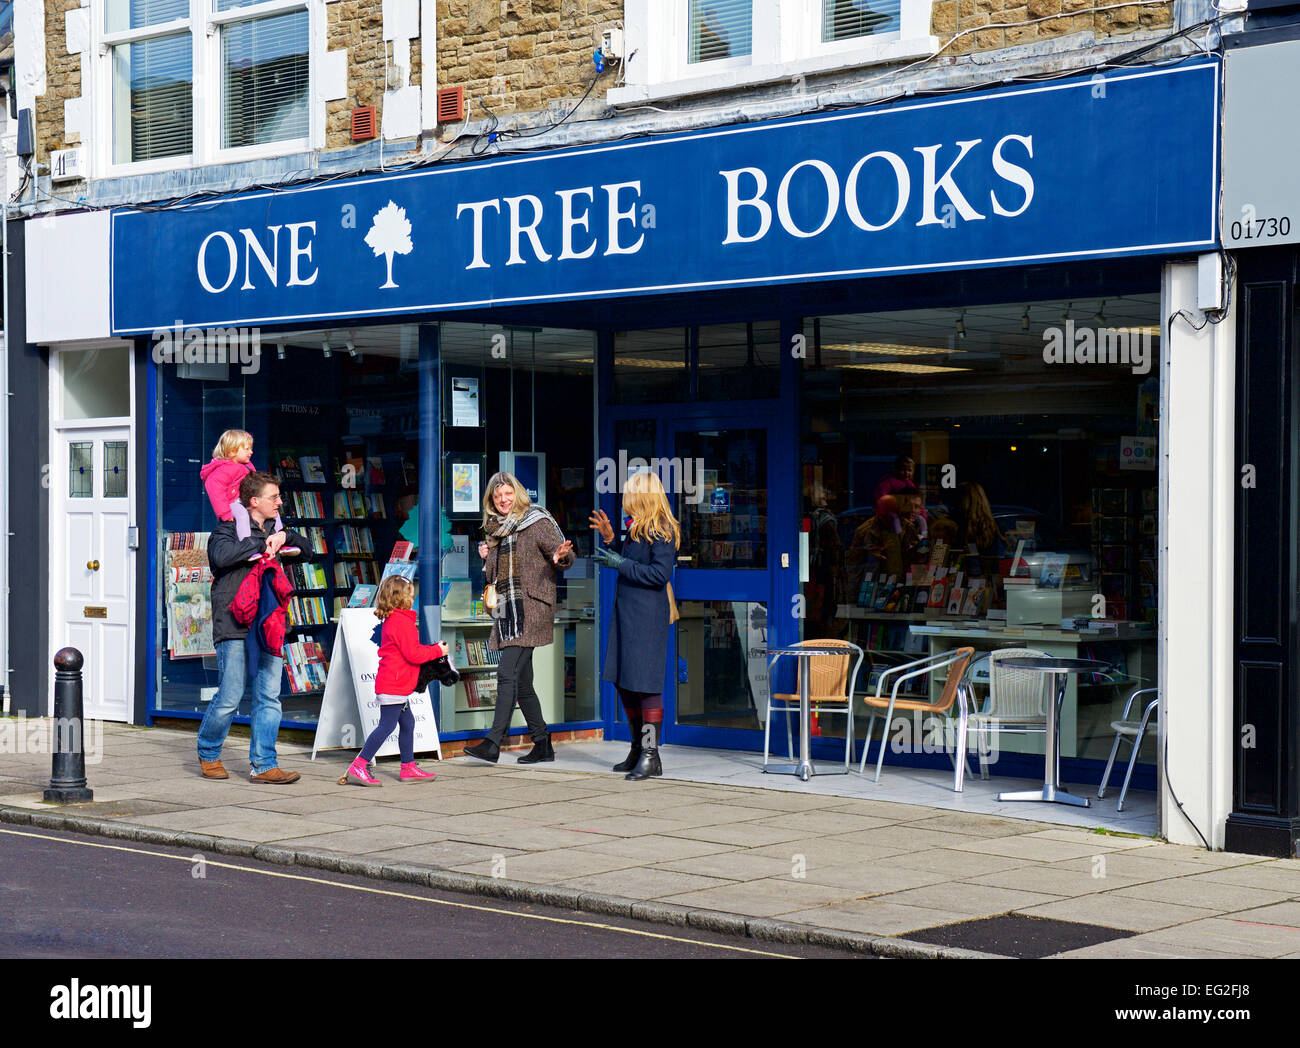 One Tree Books, an independent bookshop in Petersfield, Hampshire, England UK - Stock Image